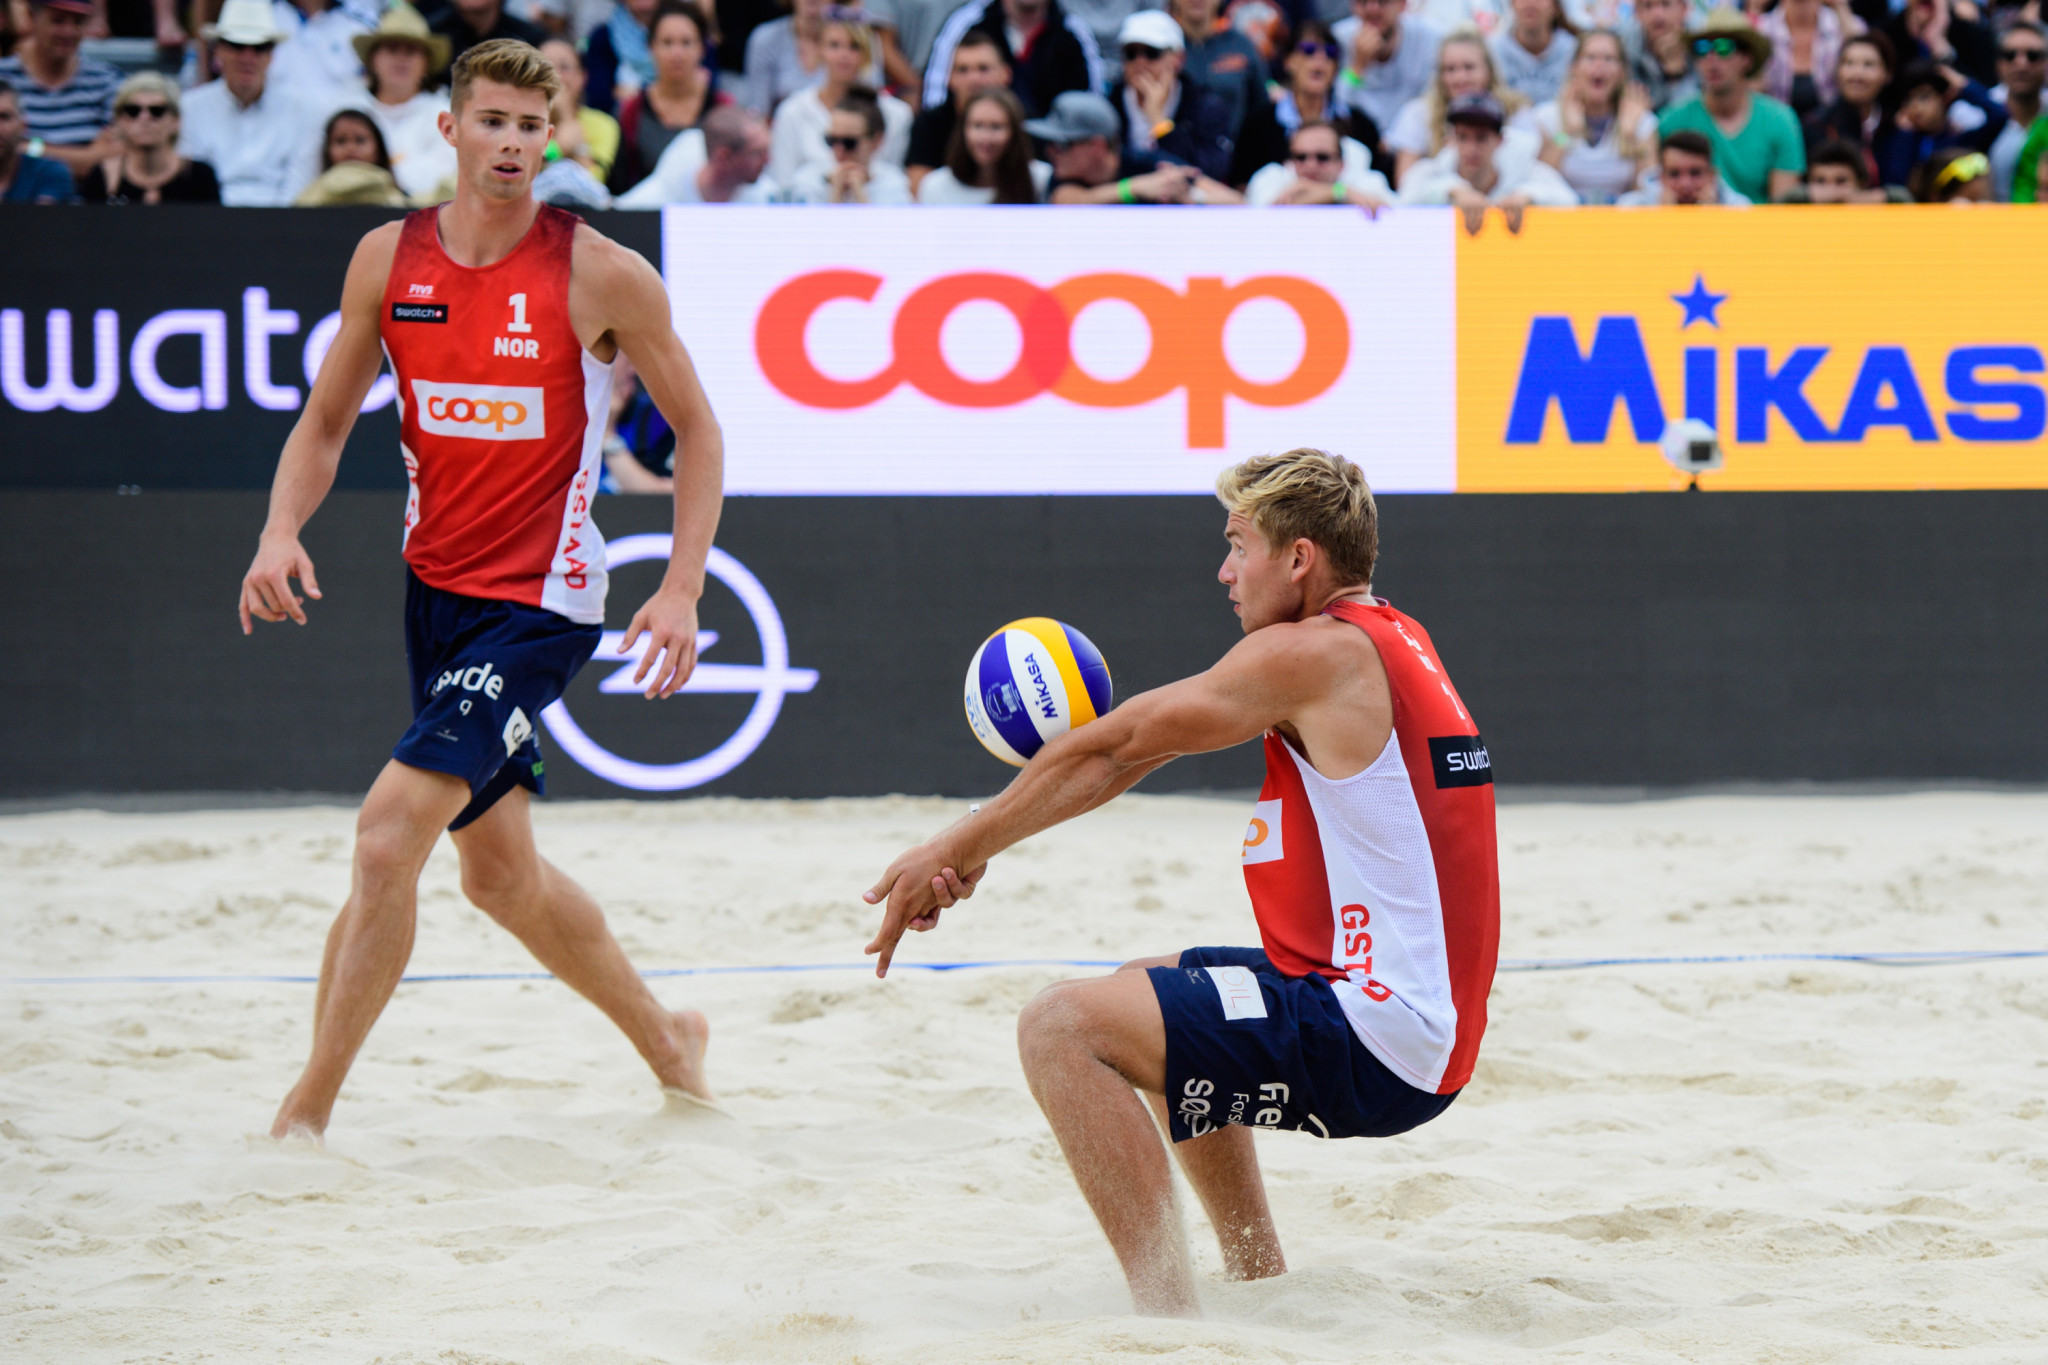 Norway's Anders Mol and Christian Sørum top the men's world rankings ©FIVB